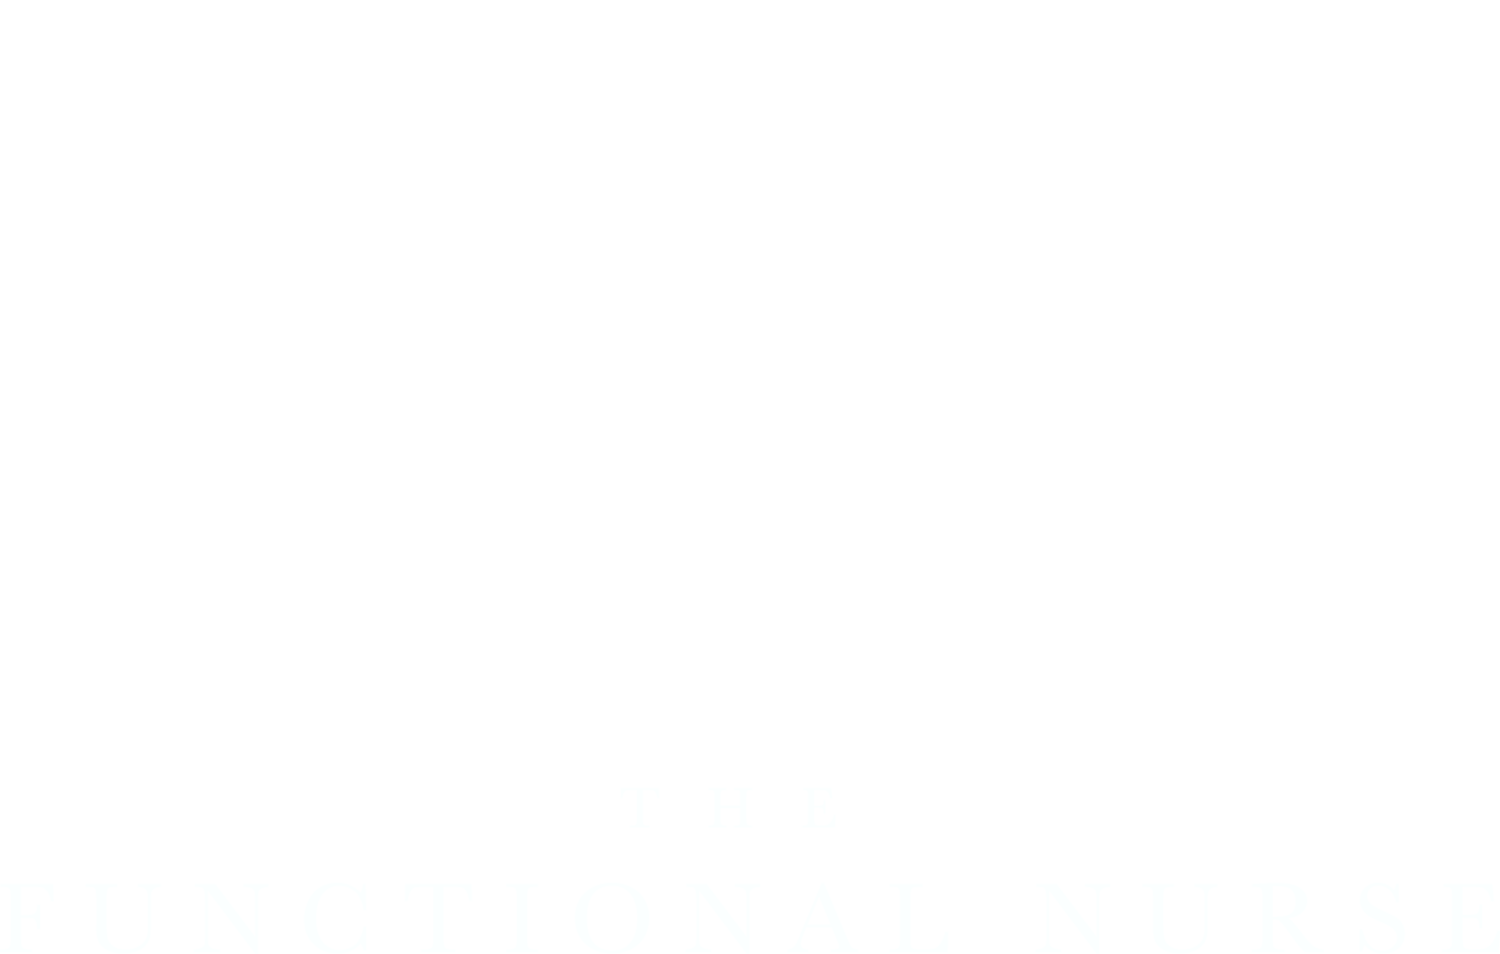 The Functional Nurse